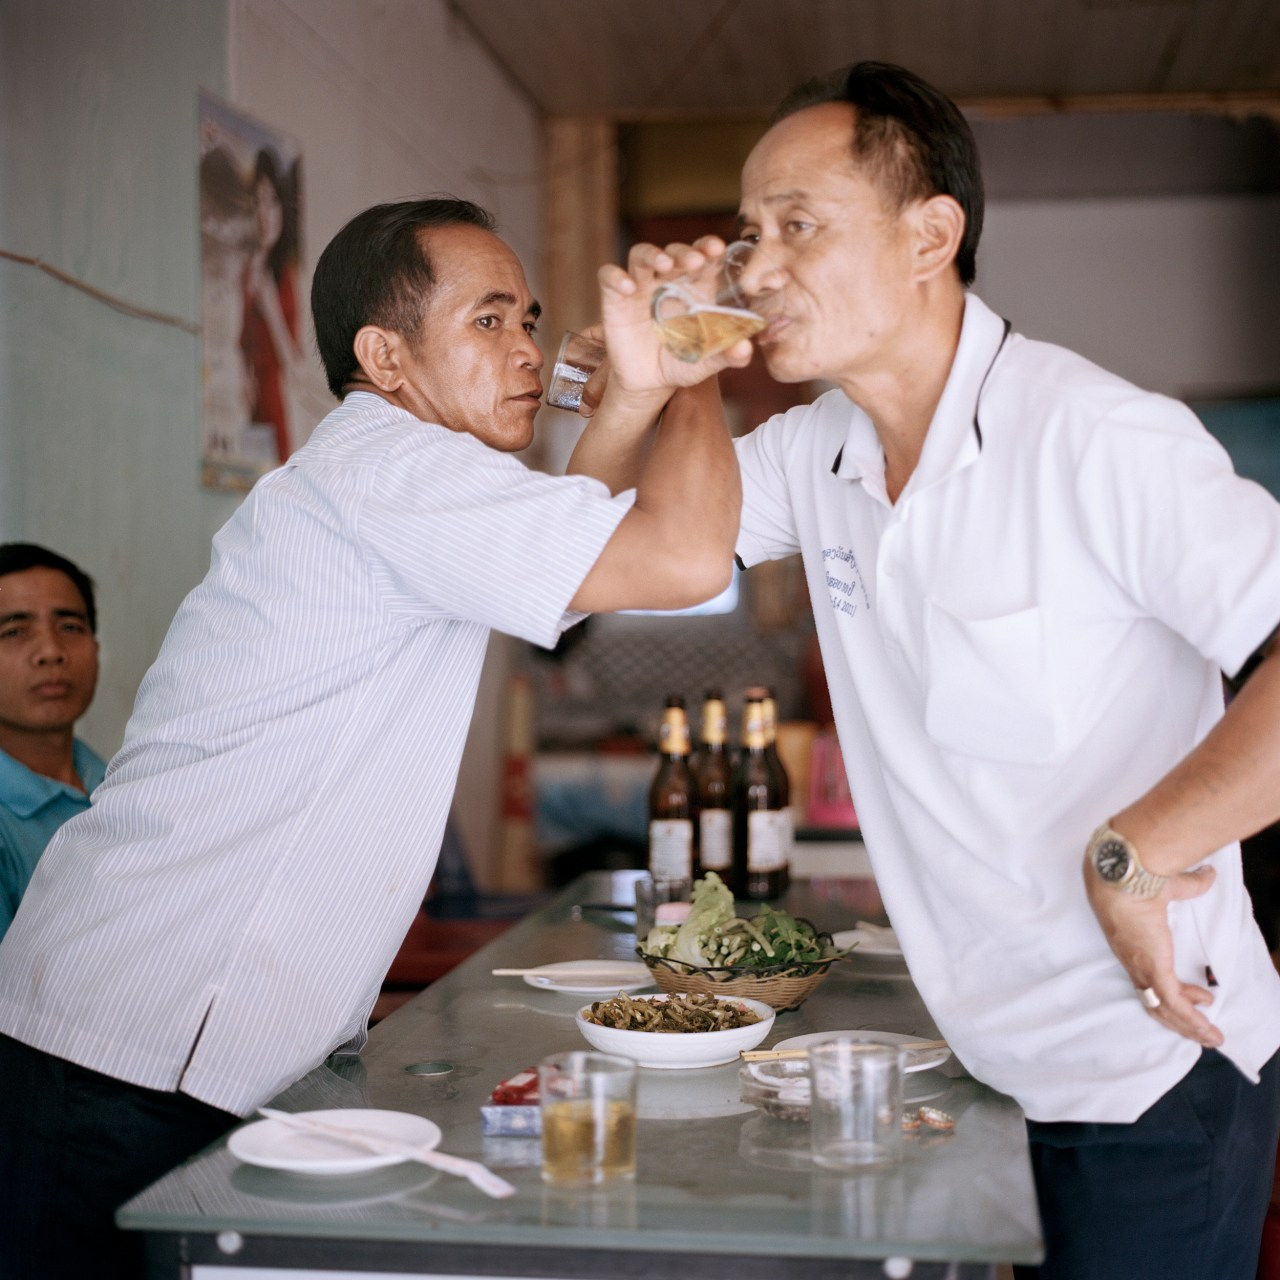 Laotians are still minorities in Boten. They work as border patrol and customs officers, and a few own small businesses.